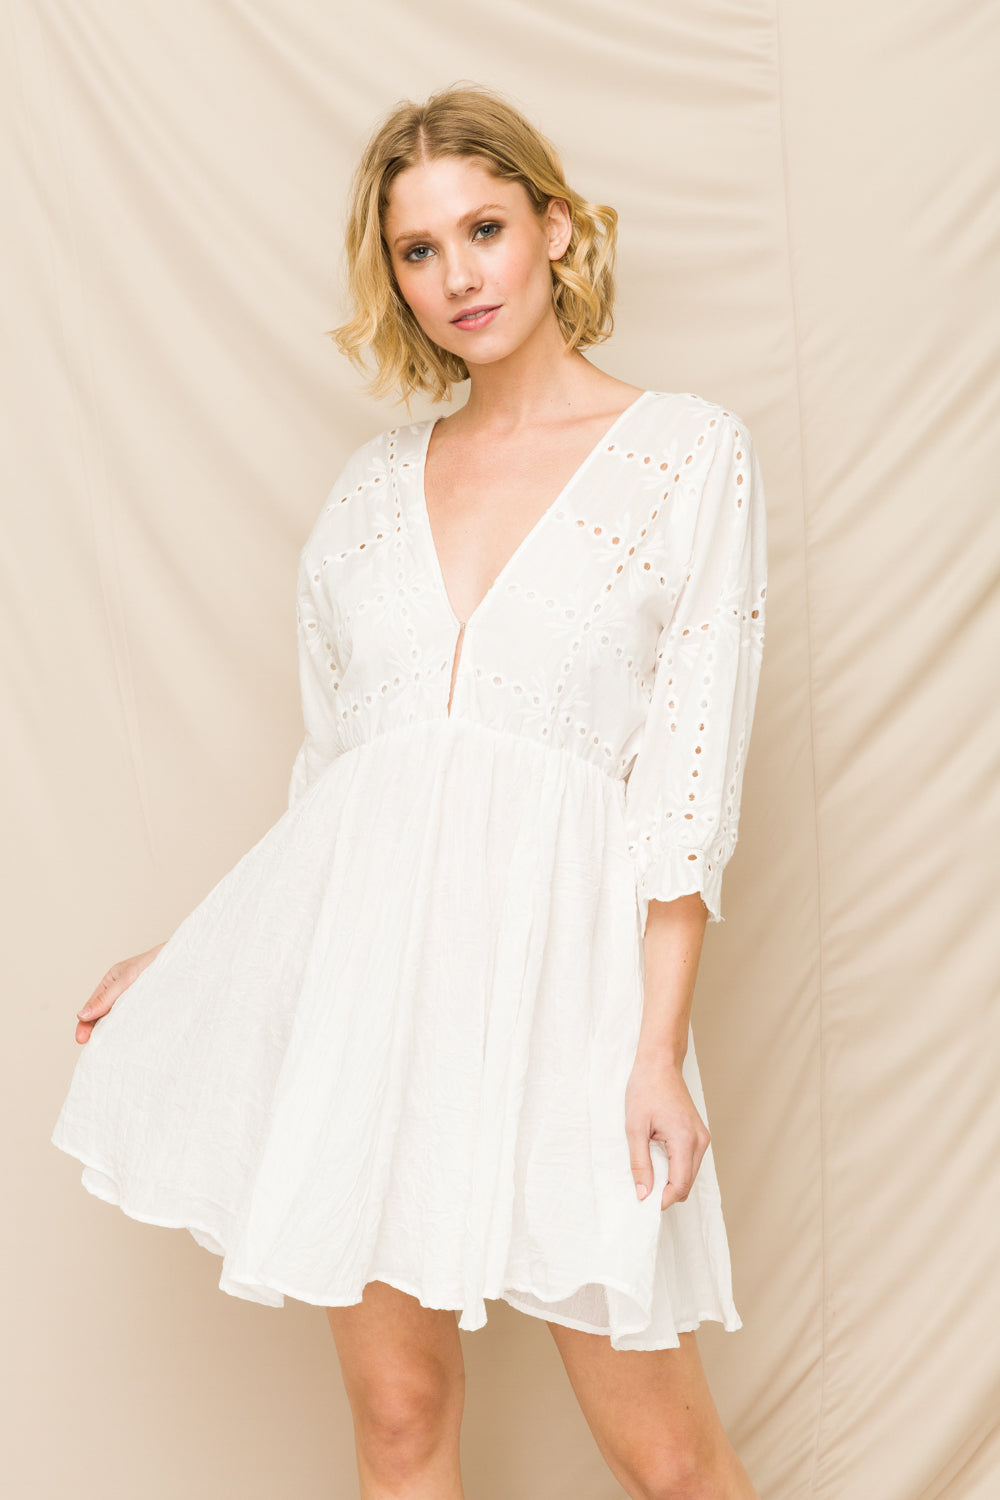 Boho Eyelet Top White Dress